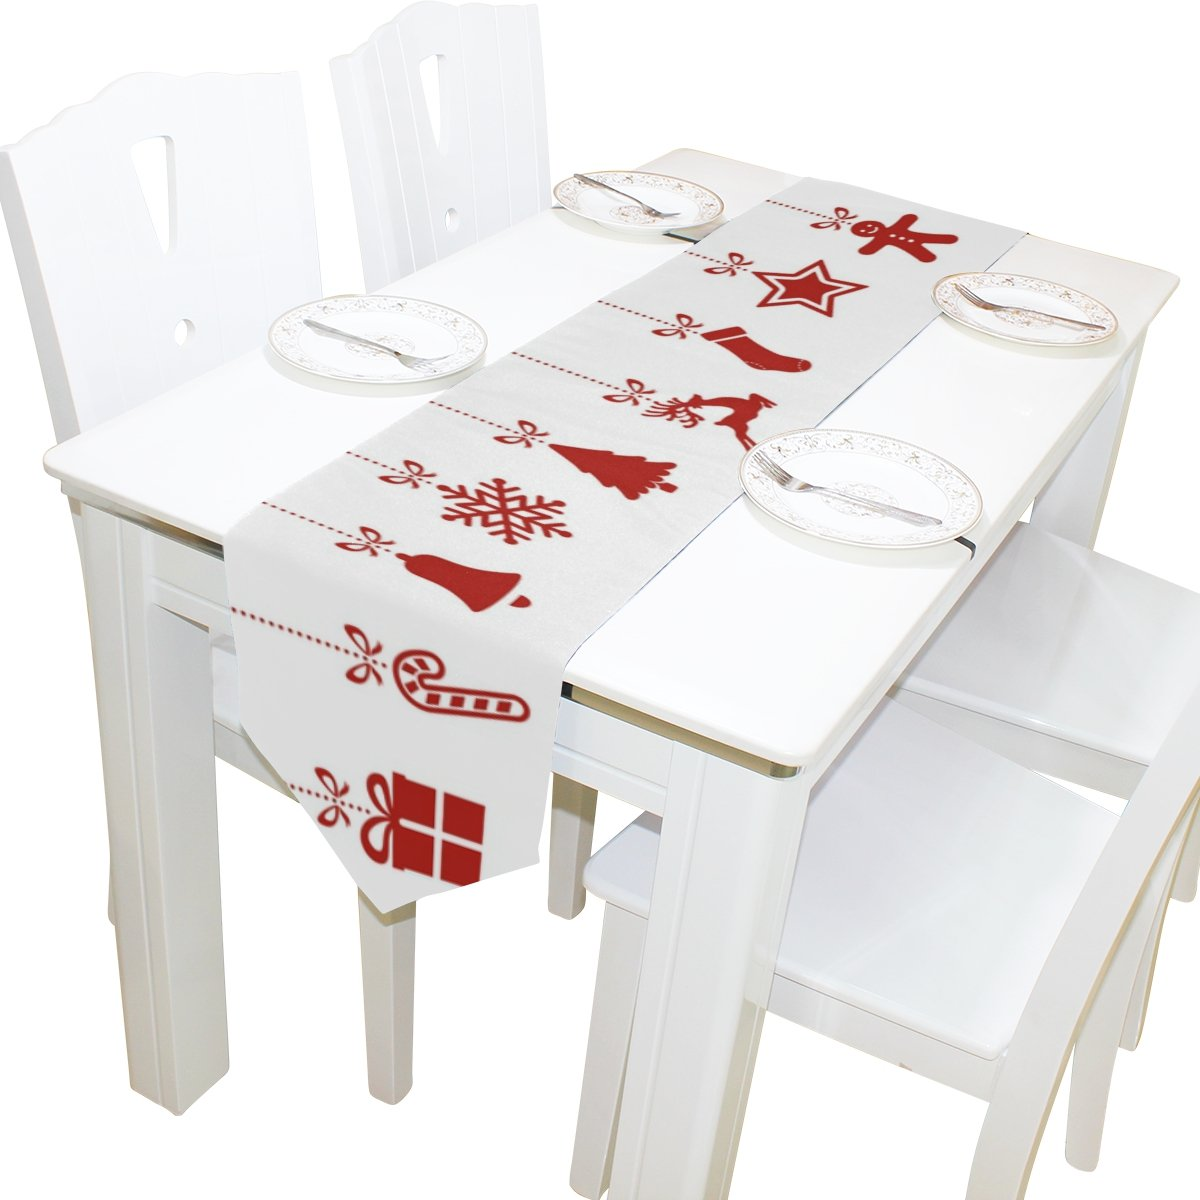 Merry Christmas White & Red Cloth Print Table Runner | ChristmasTablescapeDecor.com